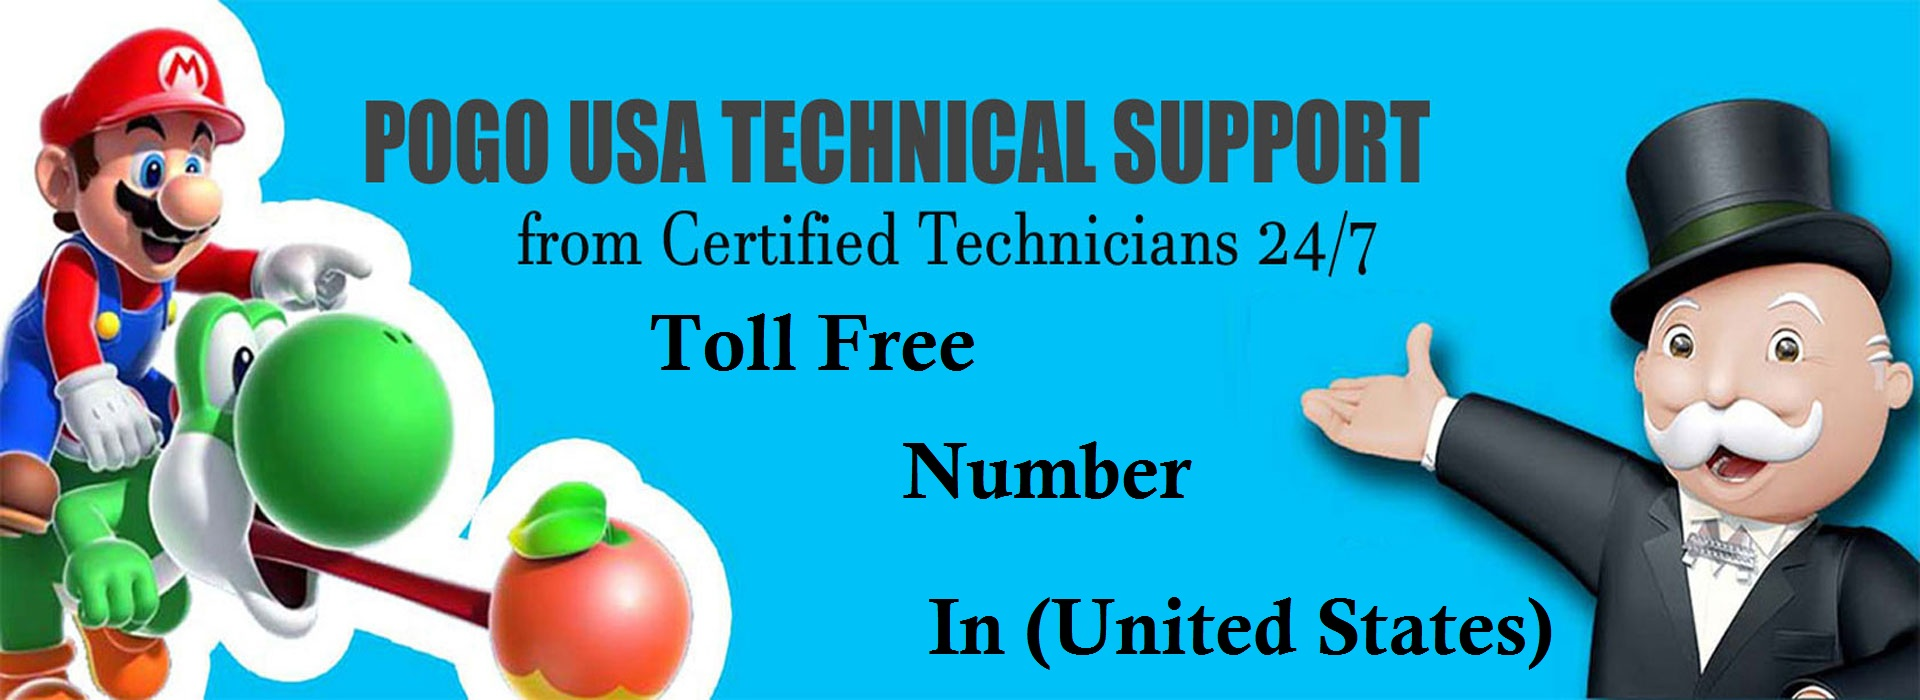 Instant Help For Pogo Games Support Helpline Number (Toll Free)